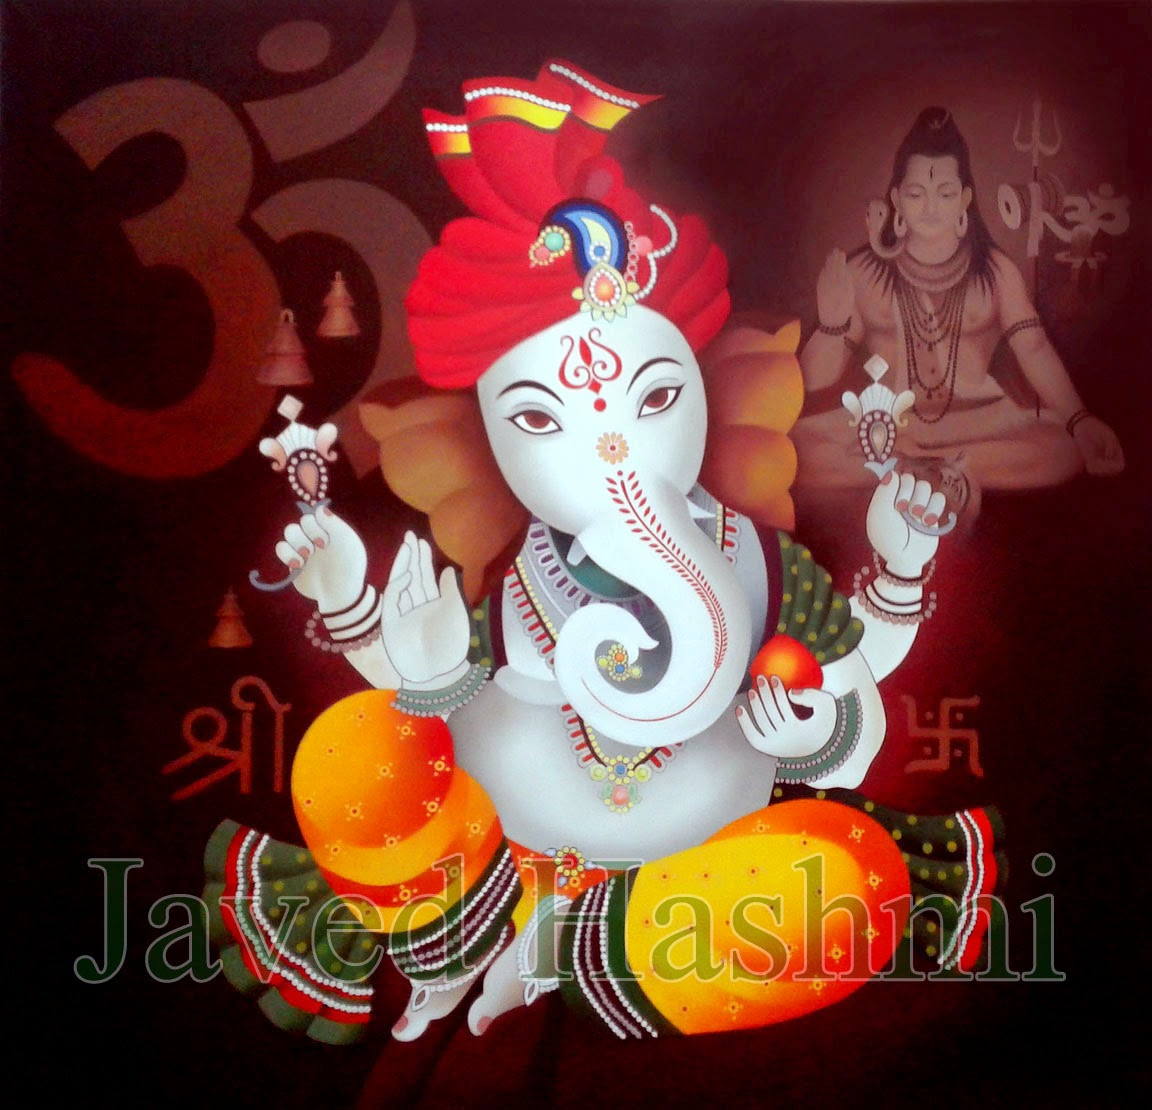 Lord ganesha multi color painting hd image - Lord Ganesha Contemporary Oil Painting Size 72 X 72 Inch Medium Oil On Canvas